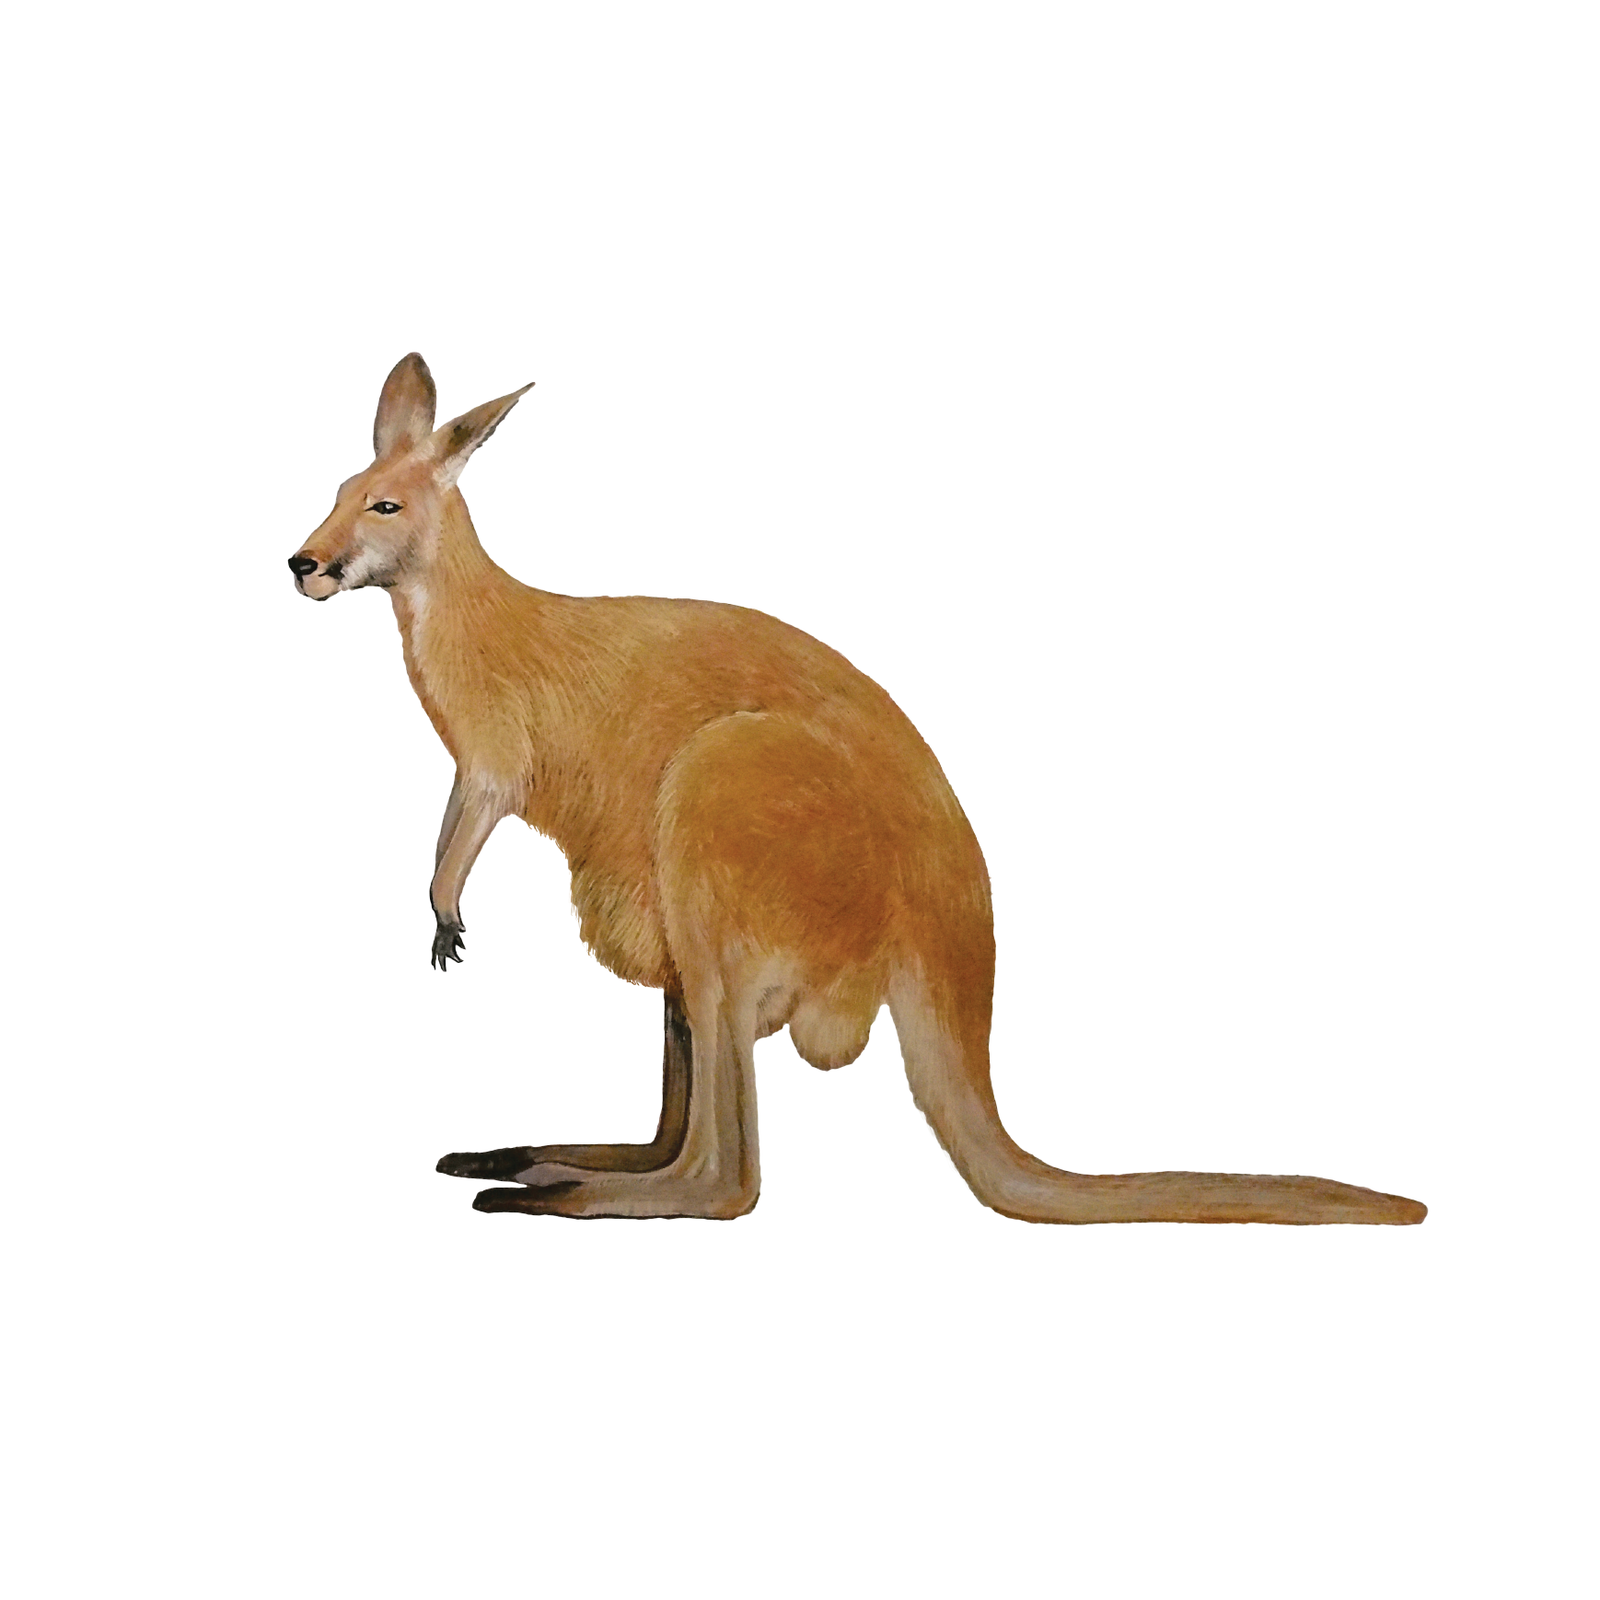 Mammals Flashcards for kids, Animals Flashcards, Red Kangaroo